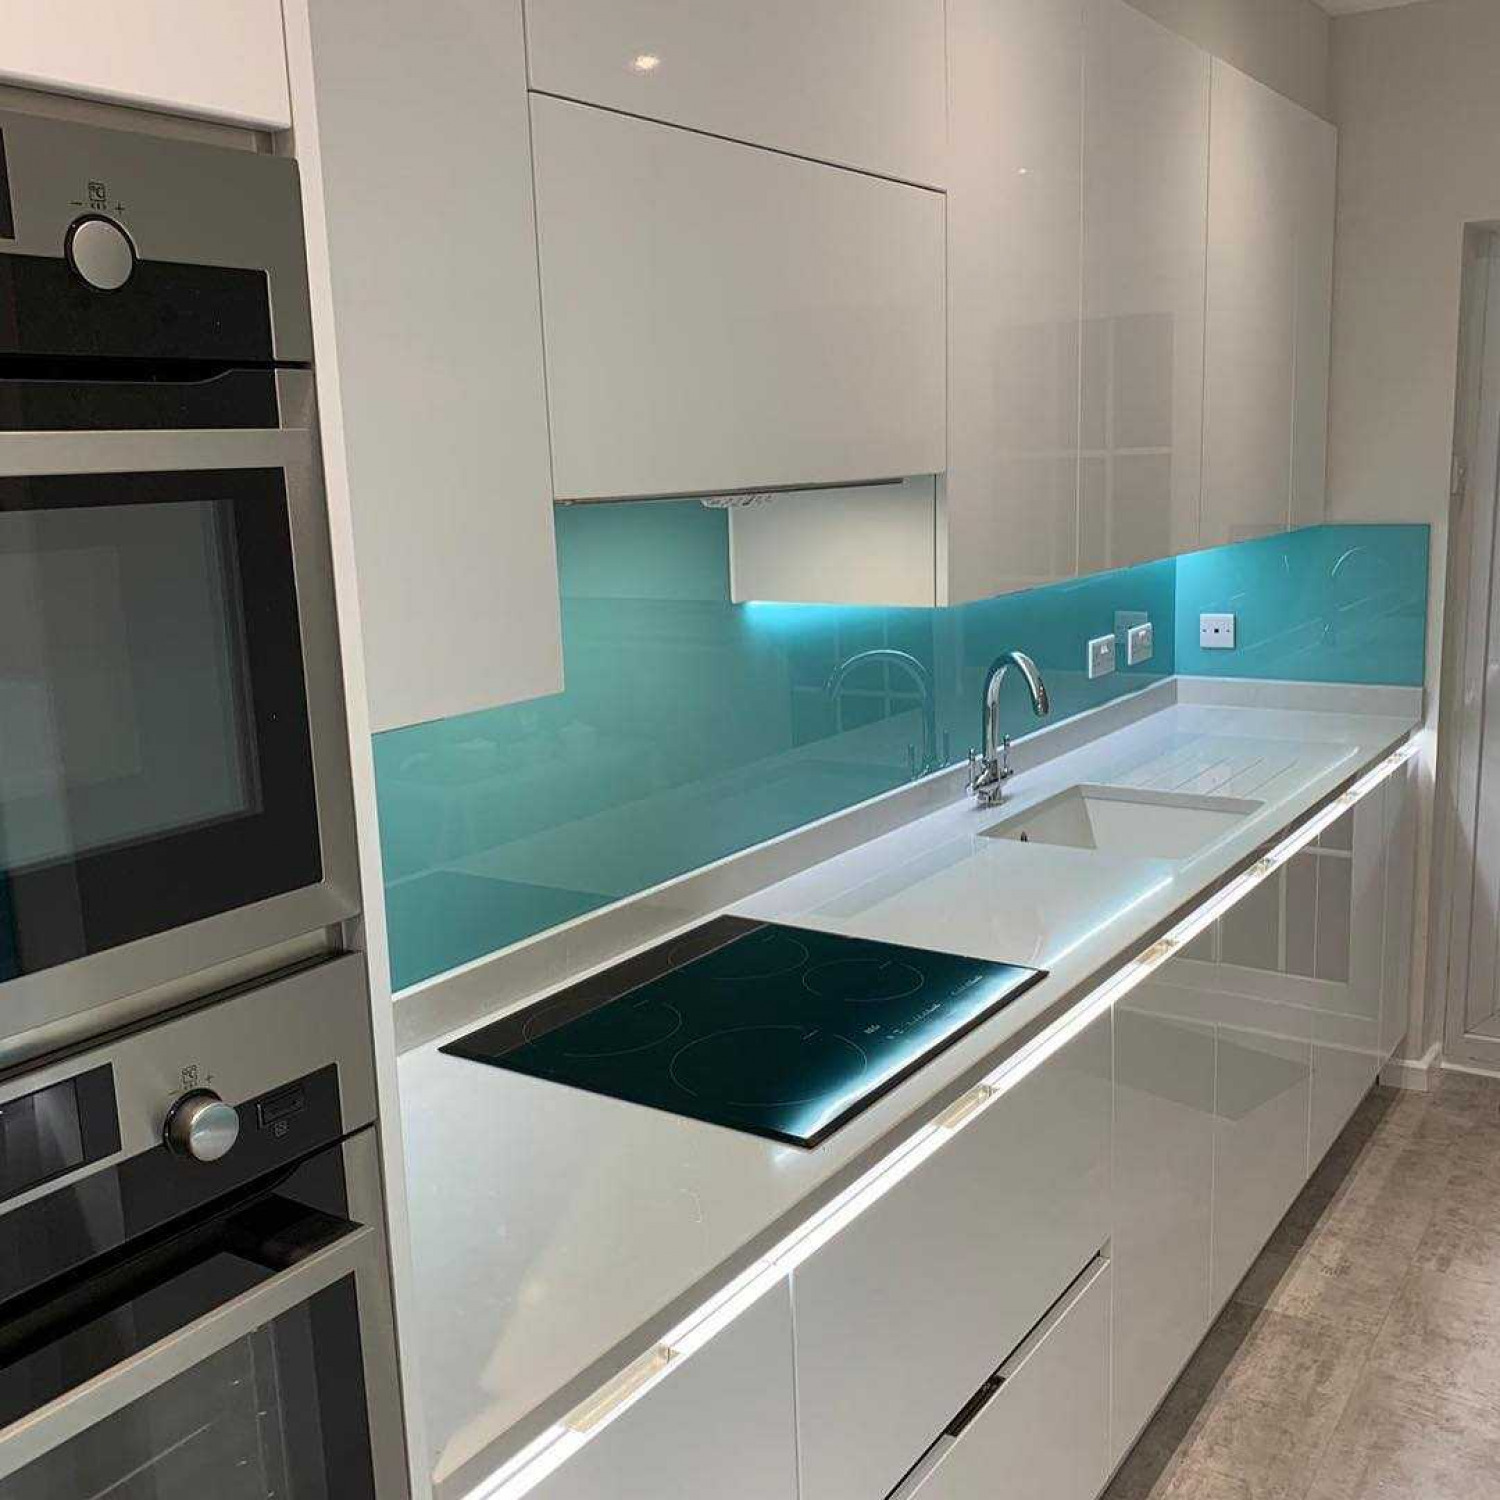 Galley Kitchen Reflective Surface